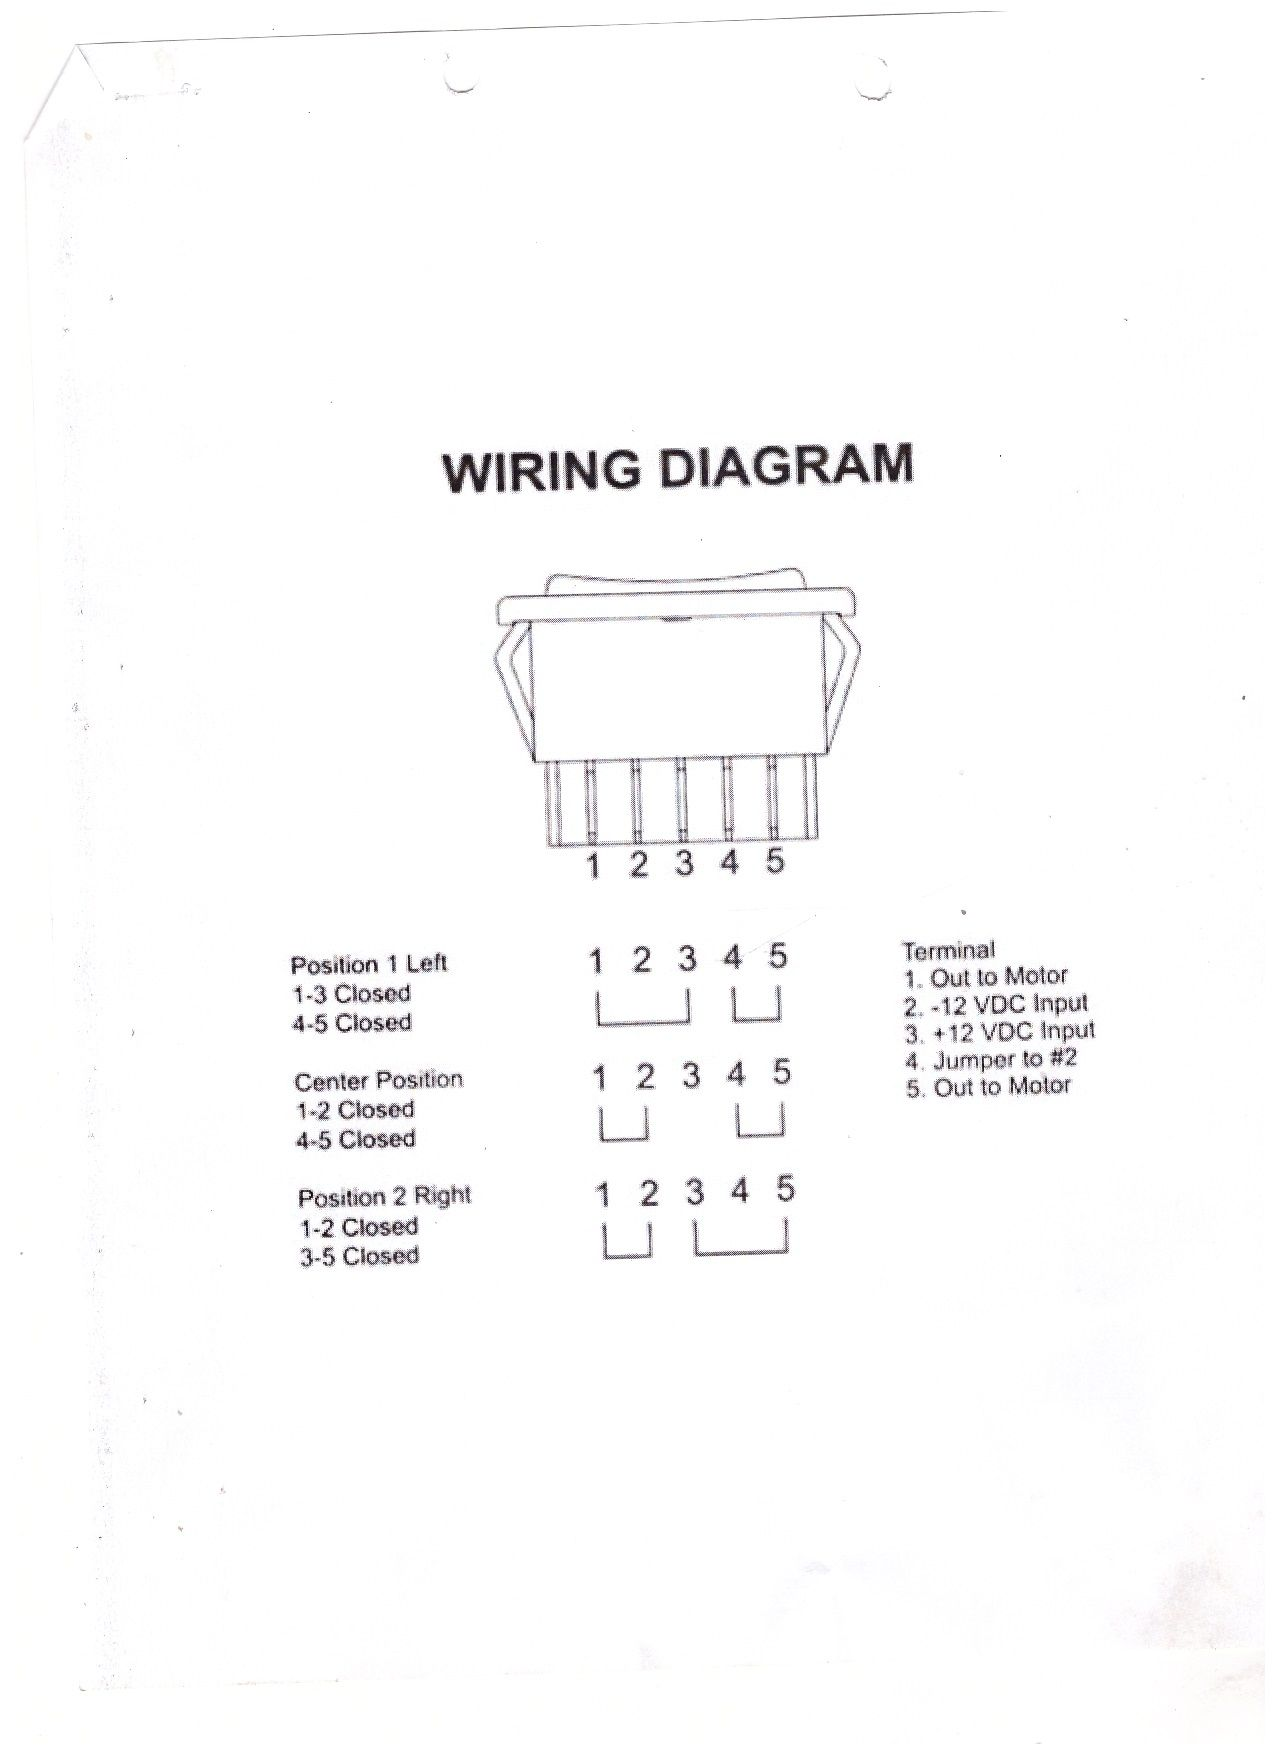 Best 12v Relay Wiring Diagram Pin Images At Switch 5 How To Wire A